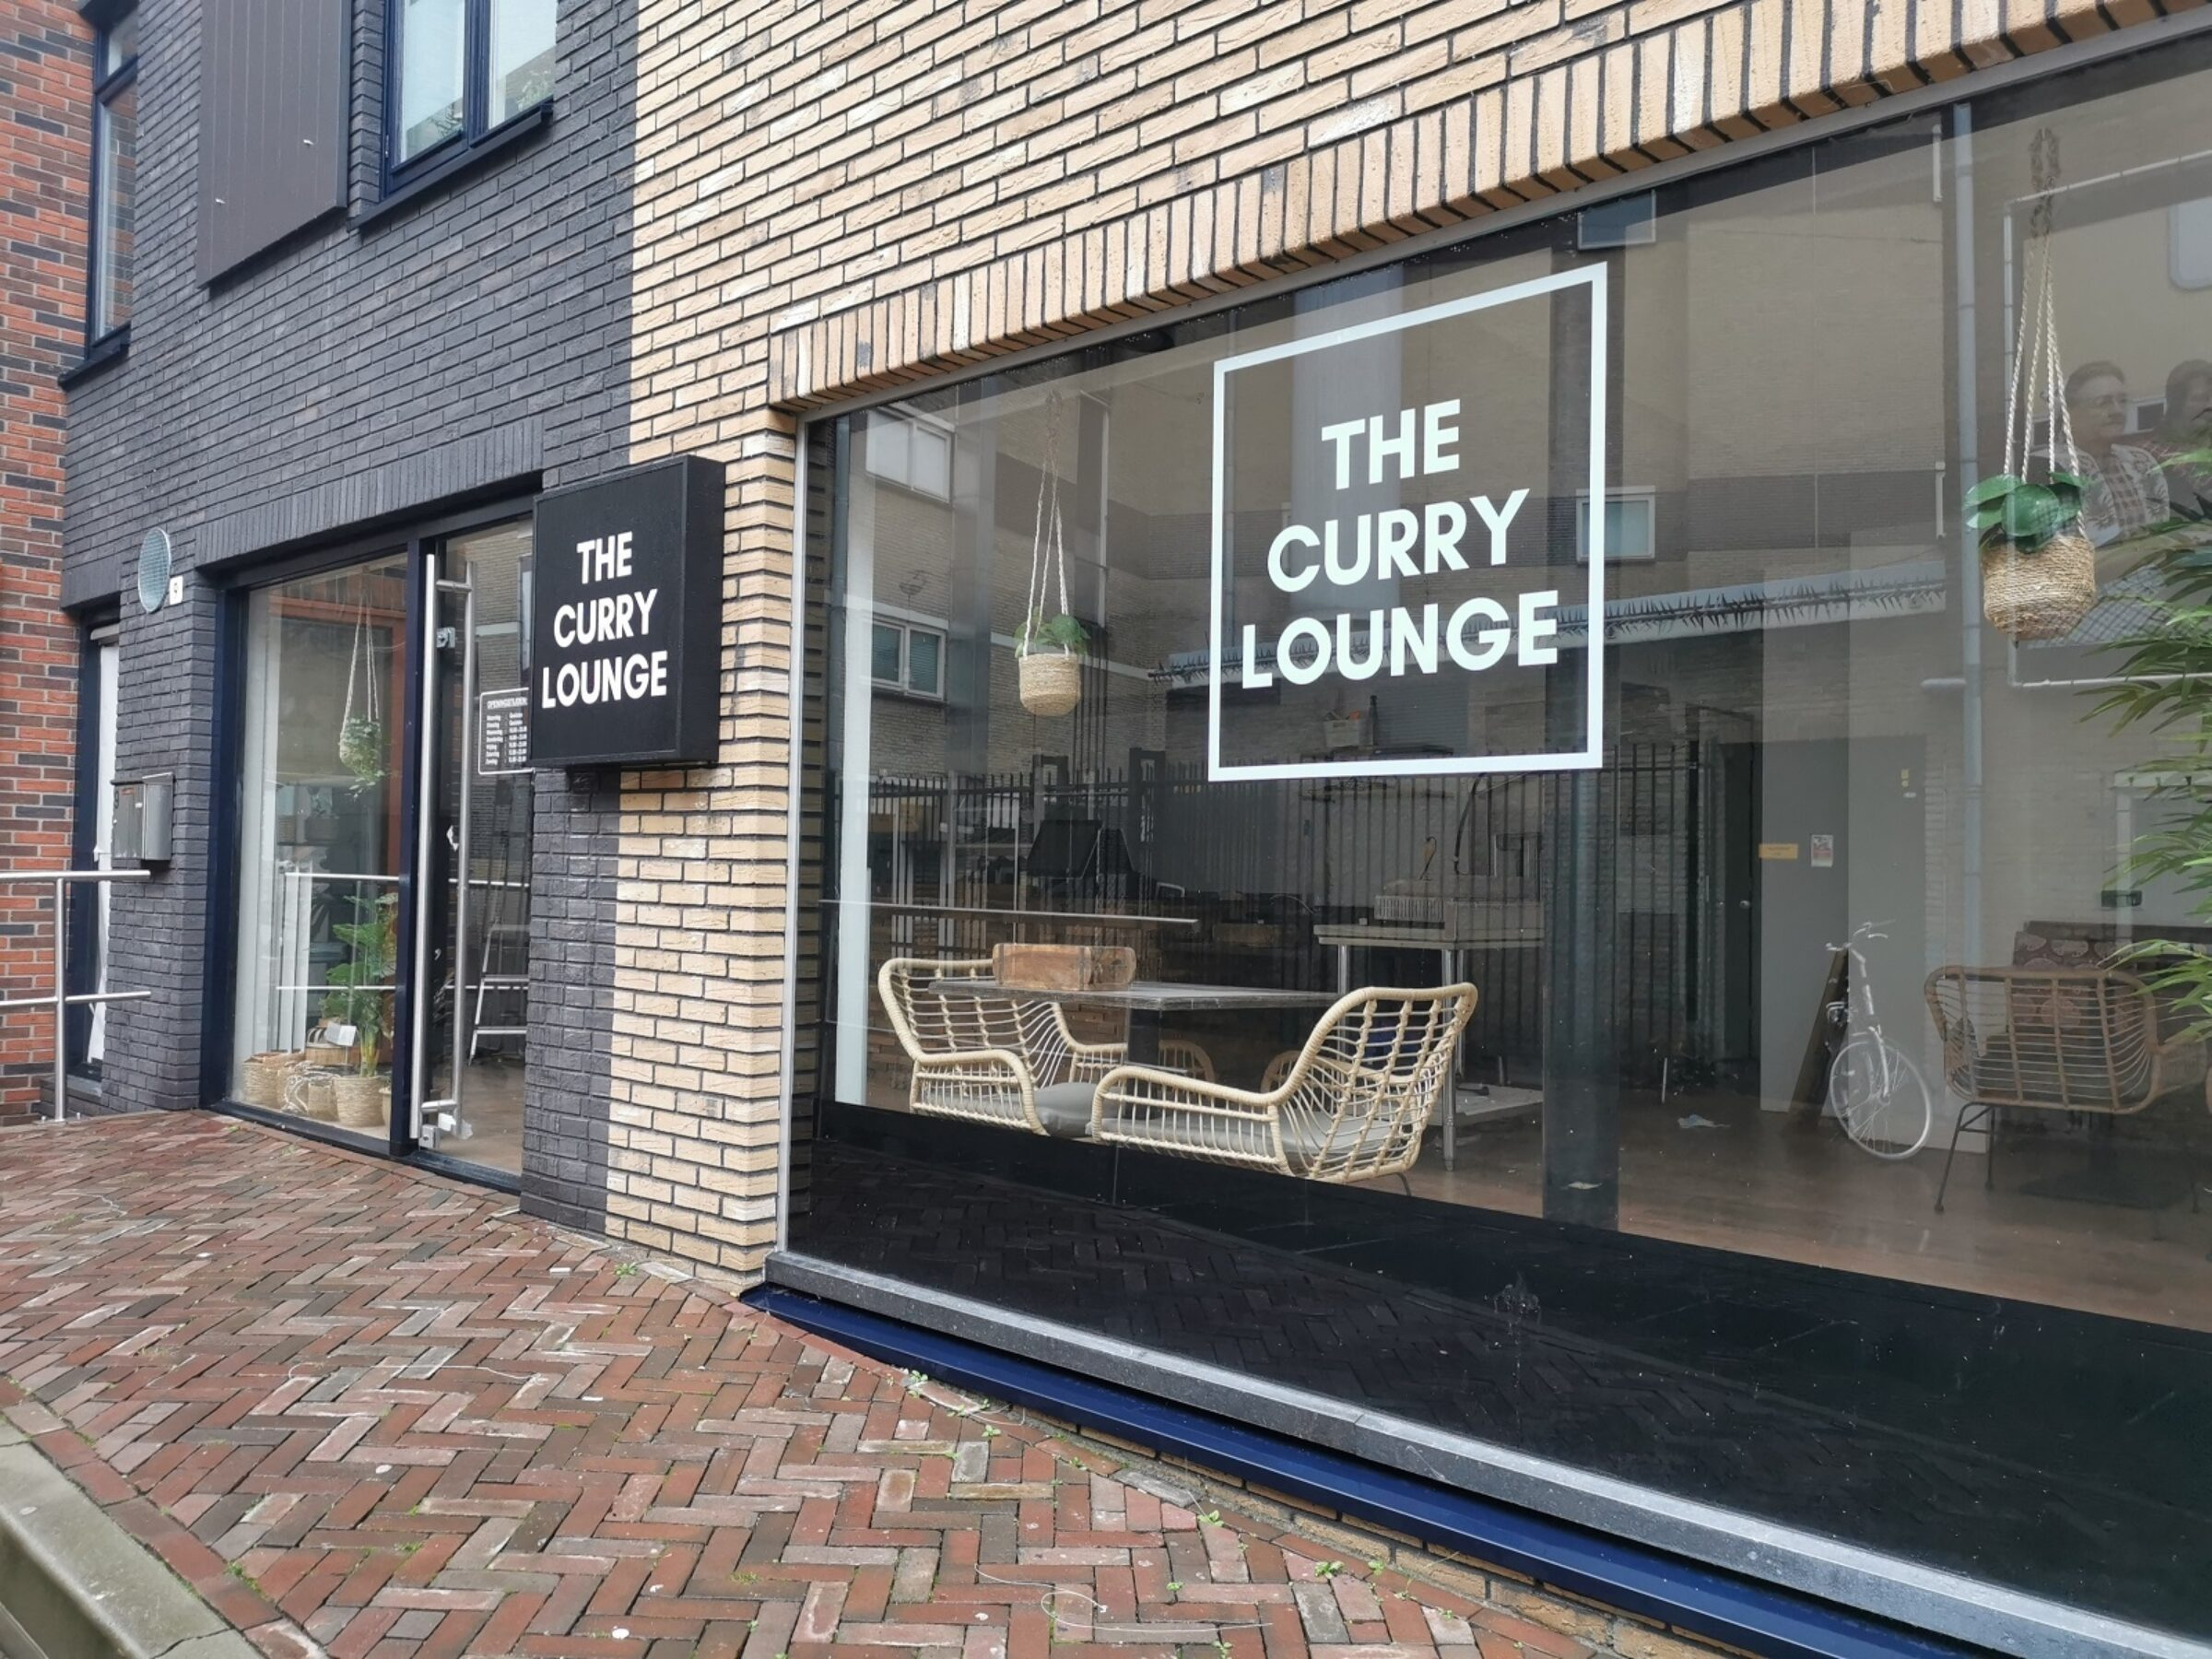 The Curry Lounge in Enschede 2